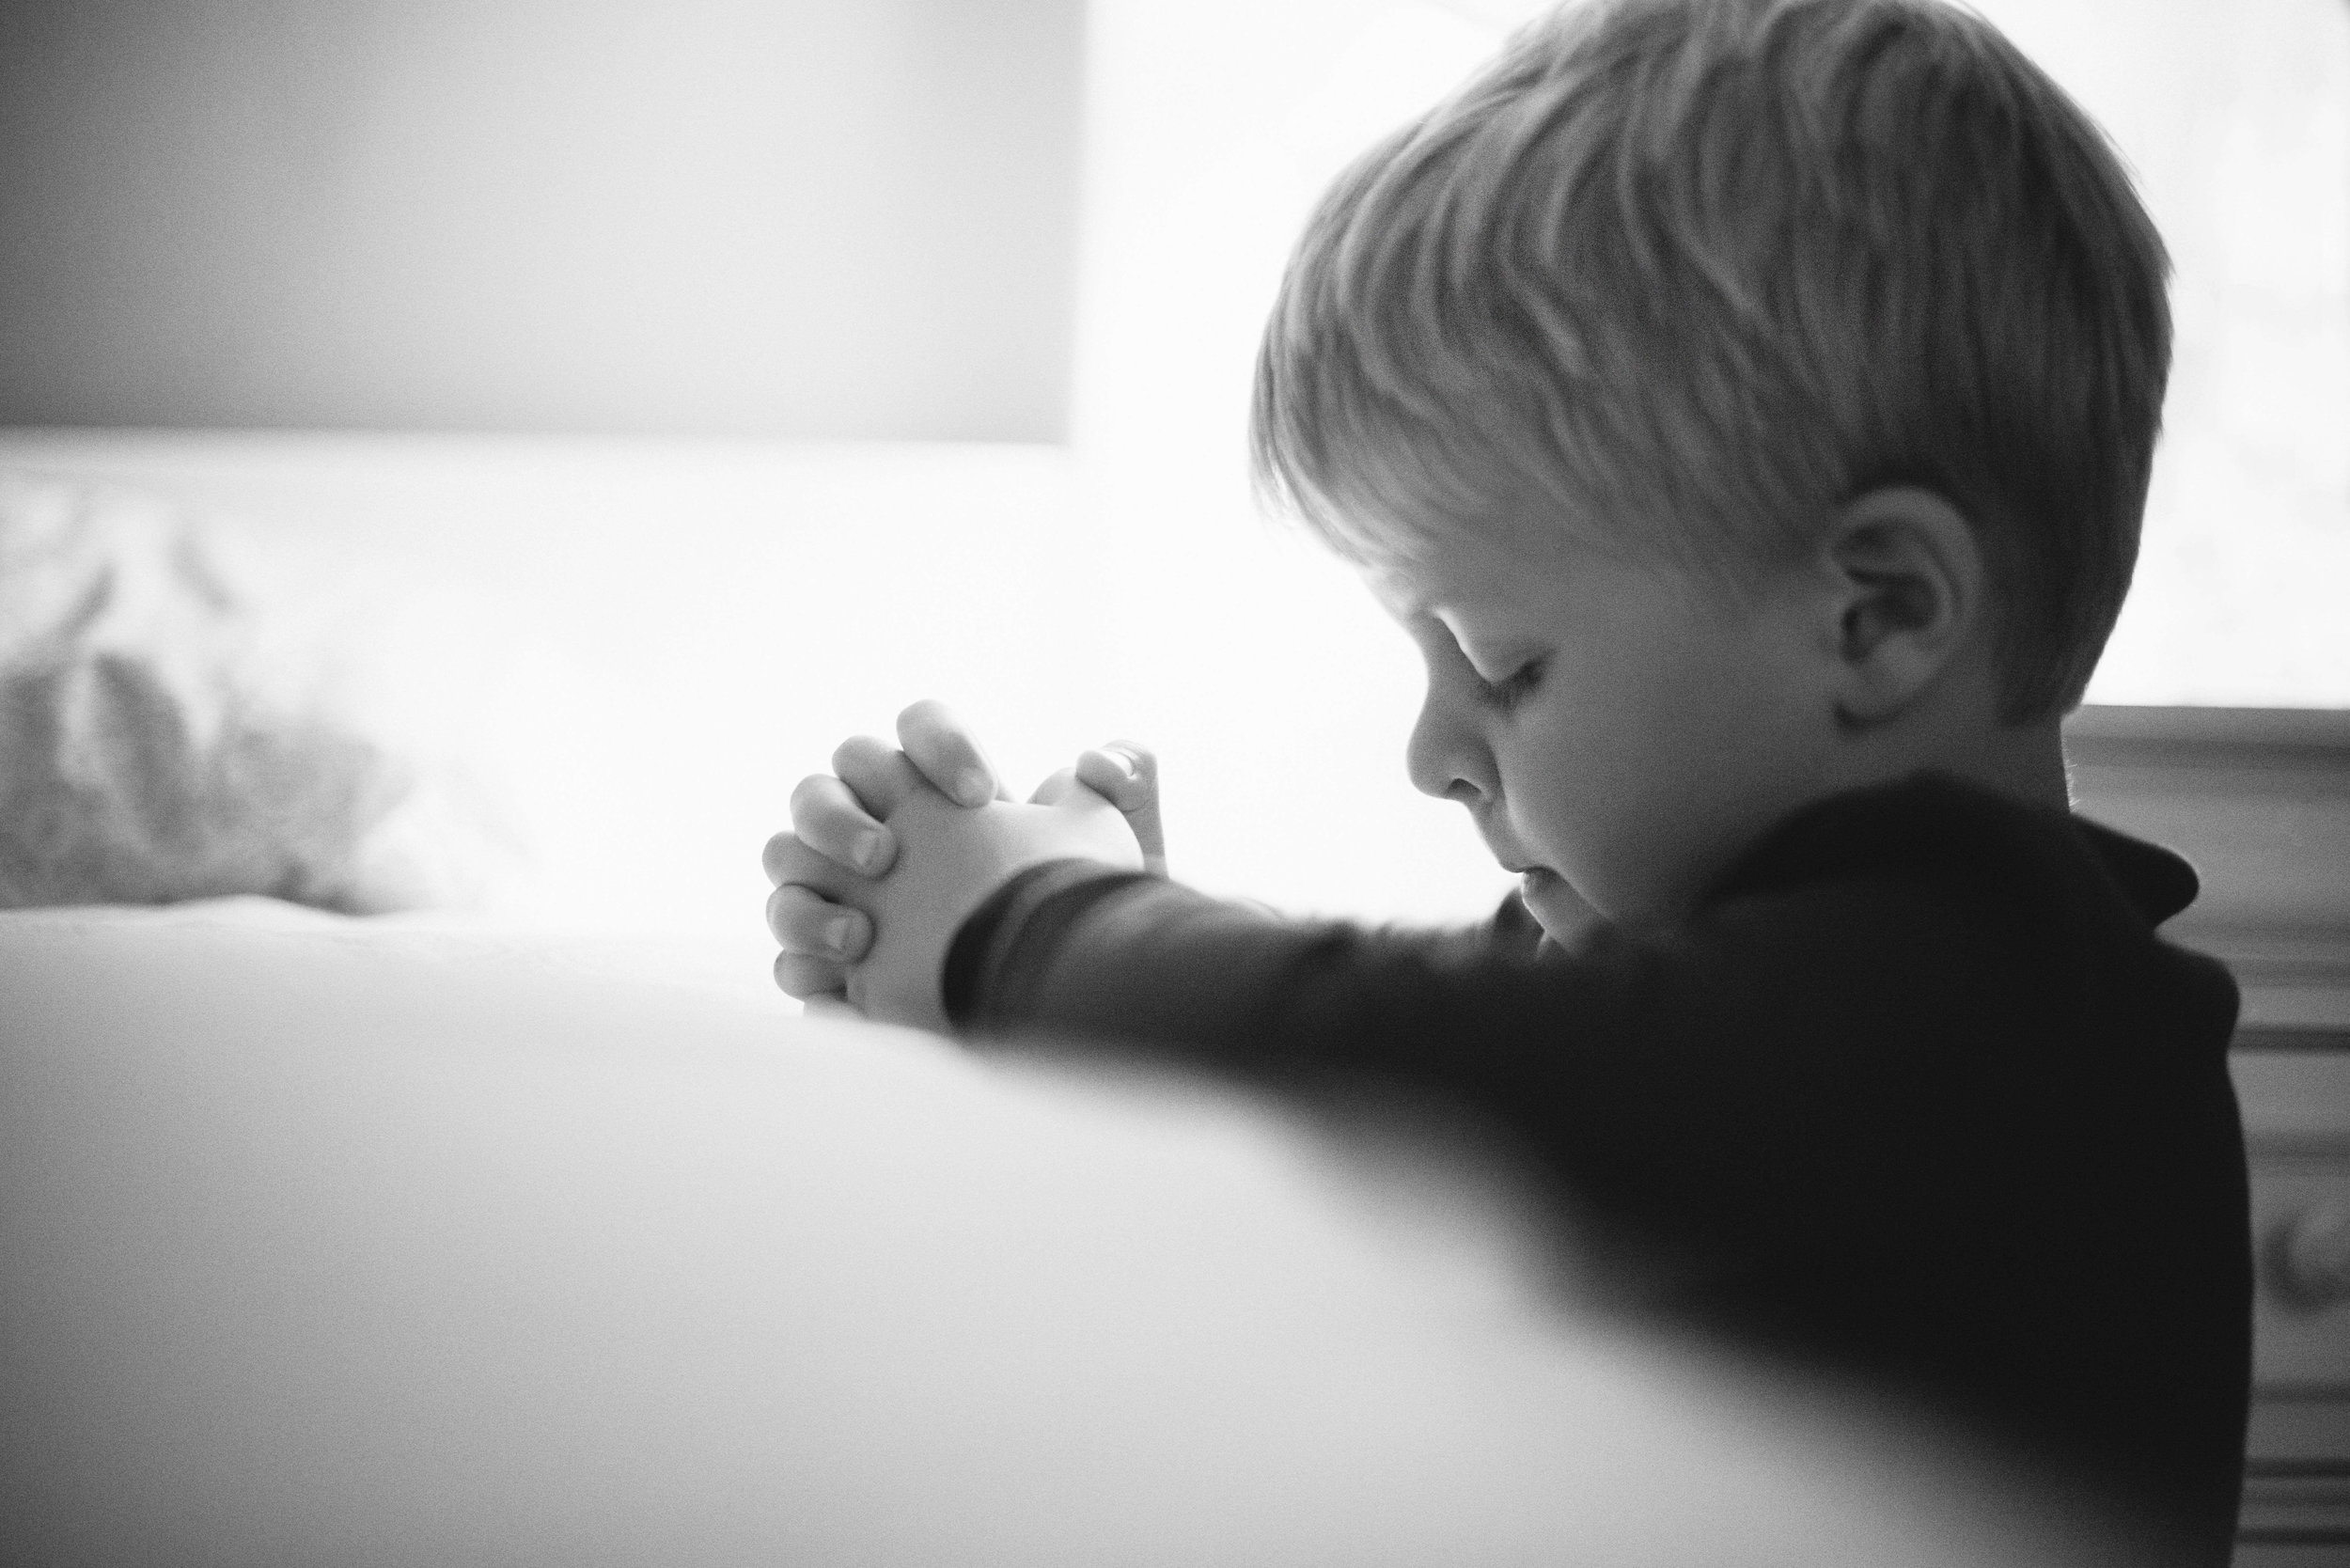 28019_42874_Boy_praying (1).jpg